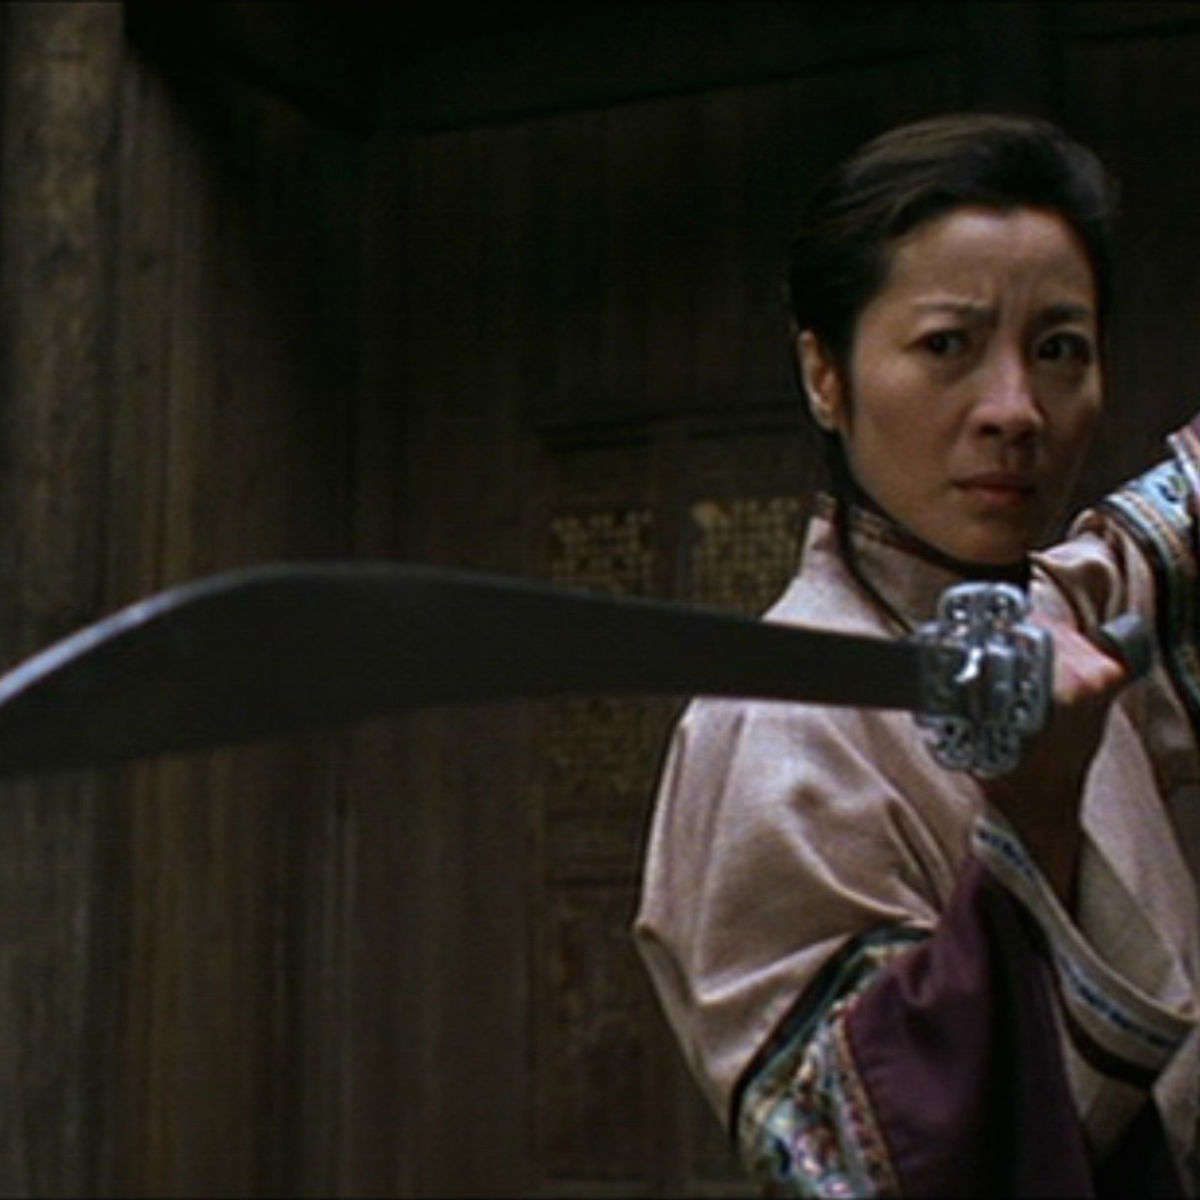 crouching-tiger-hidden-dragon-screencap-crouching-tiger-hidden-dragon-1729756-1600-900.jpg